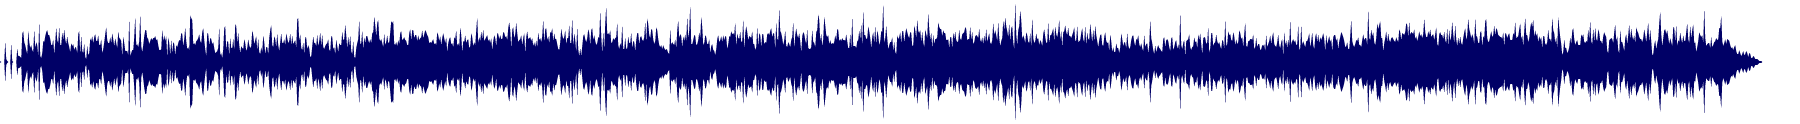 waveform of track #70999